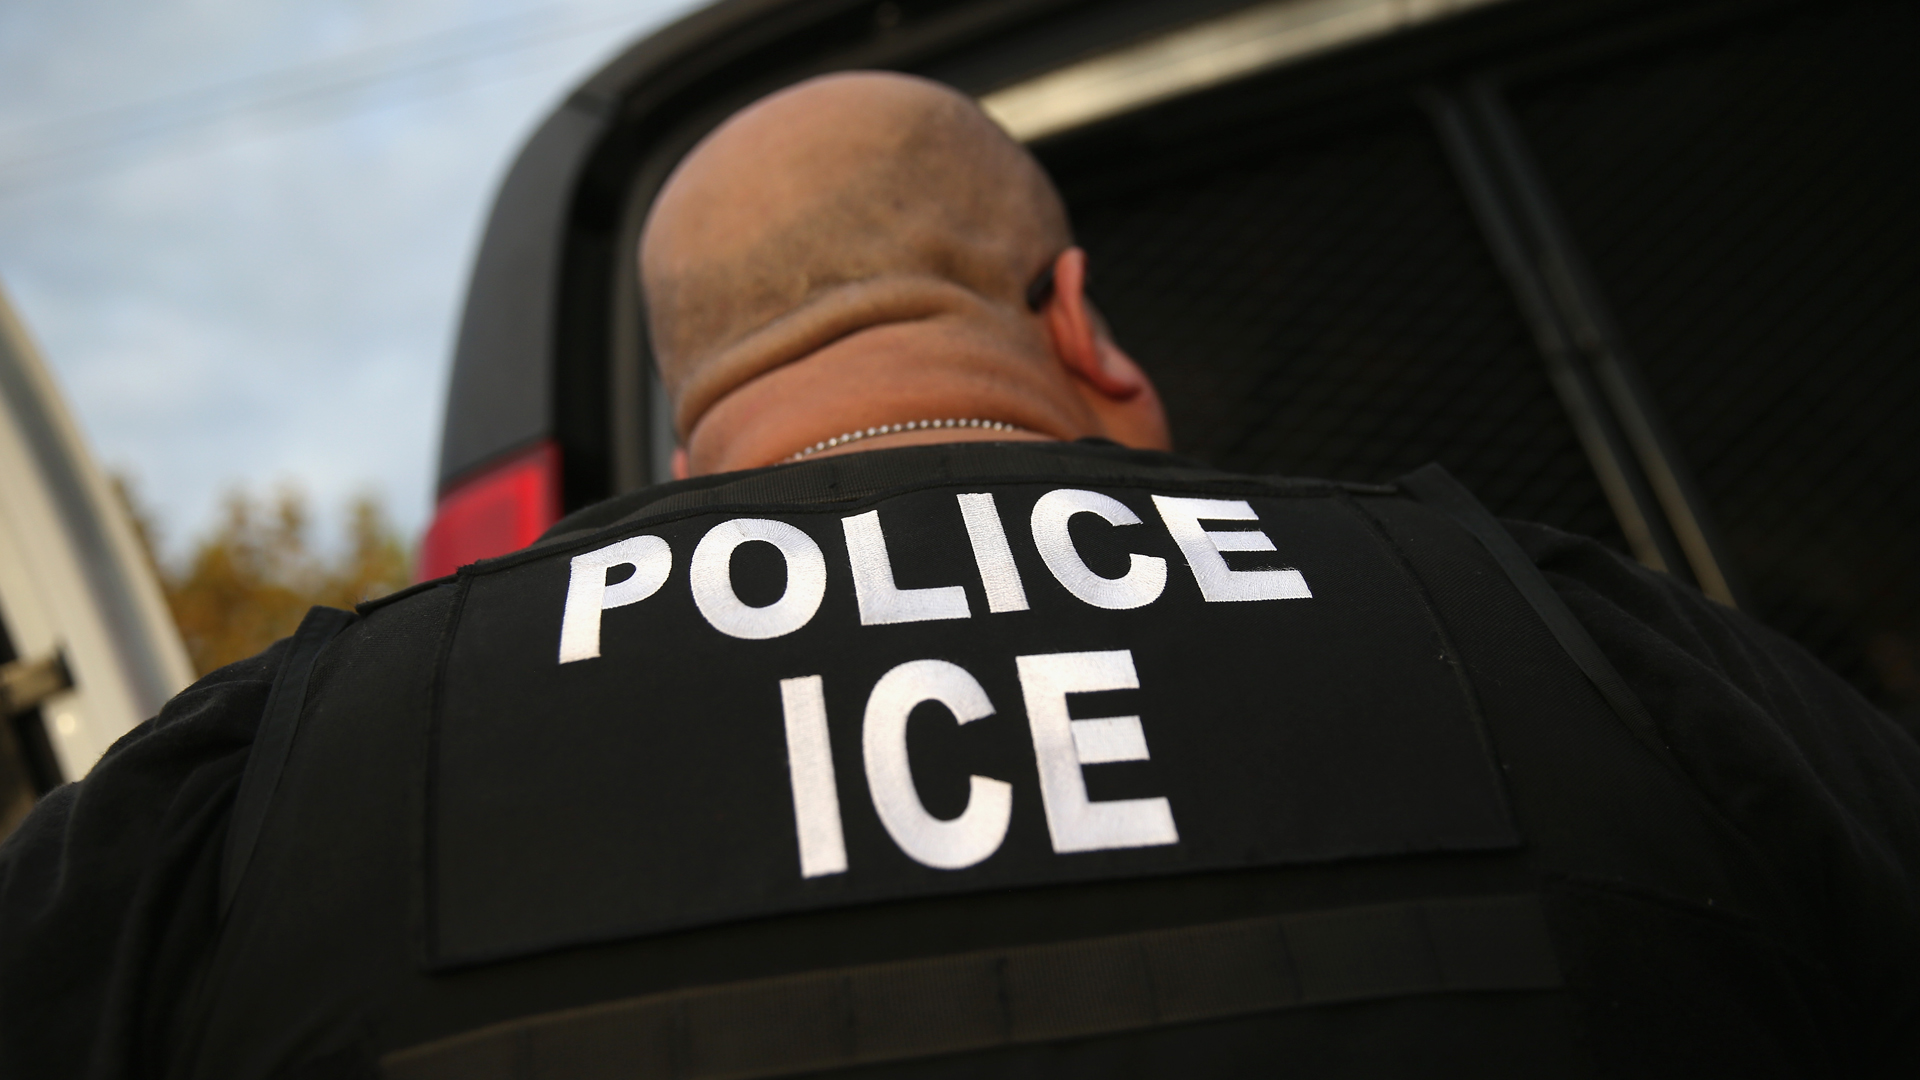 A U.S. Immigration and Customs Enforcement is seen in Los Angeles in this file photo. (Credit: John Moore/Getty Images)